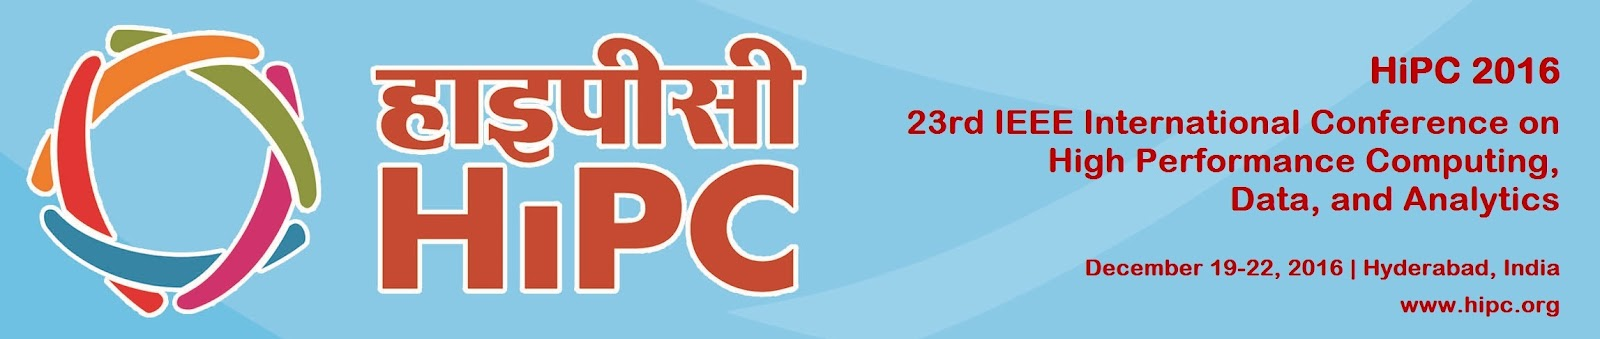 HiPC2k16-flyer-header10Jan15.jpg